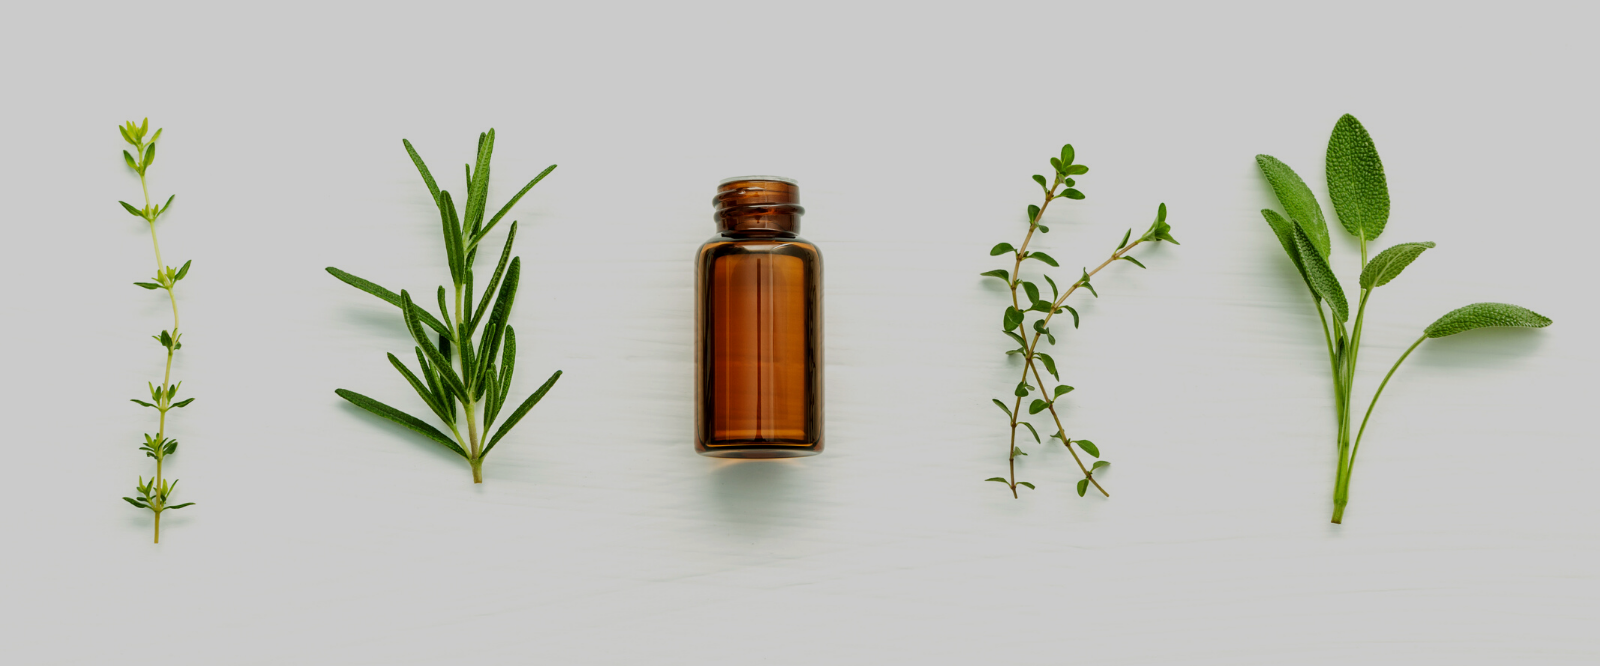 bottle of essential oil perfume next to herbs for herbal skincare